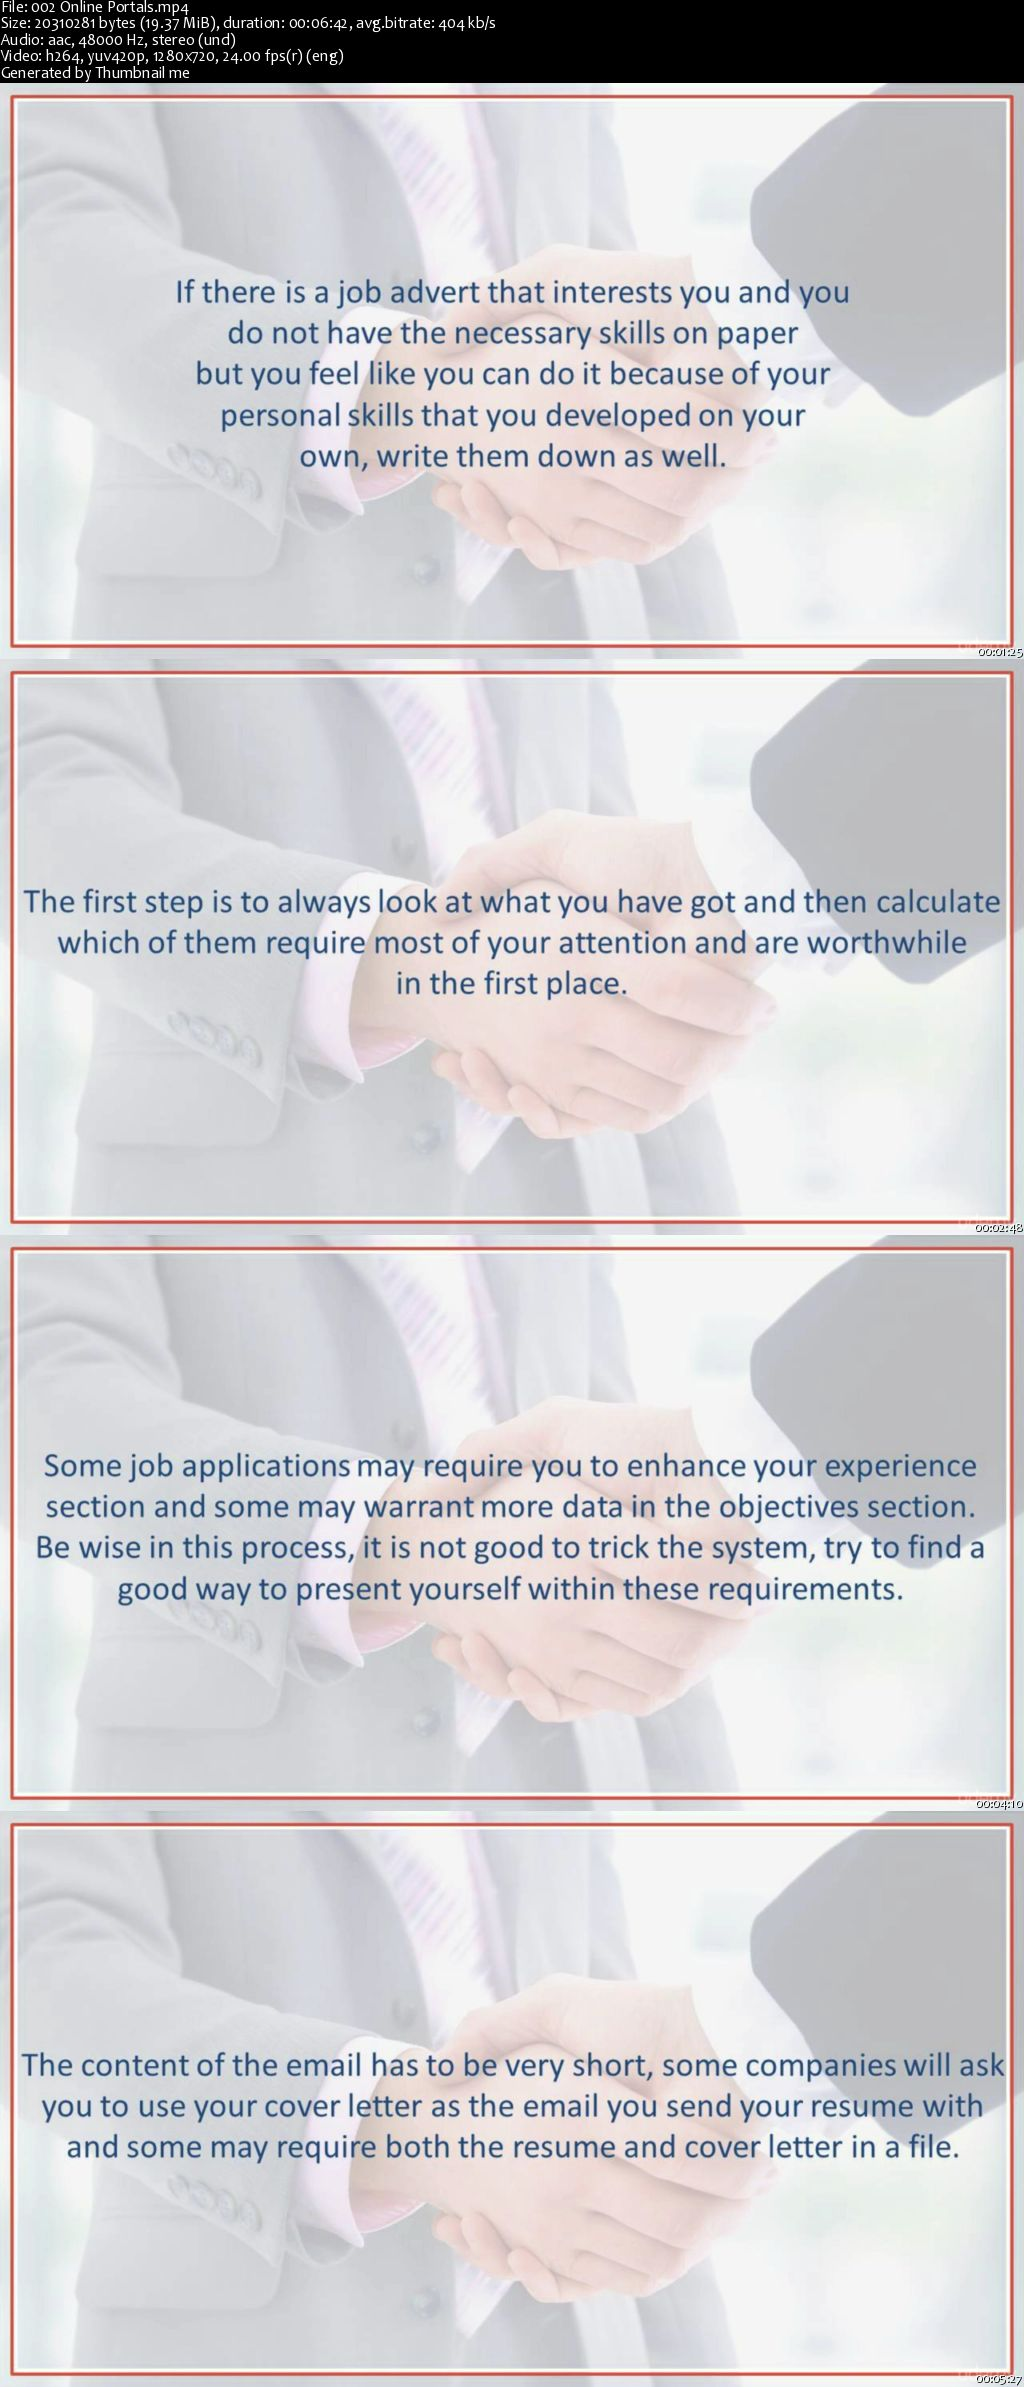 Download Interviewing skills & Job search: Resume writing